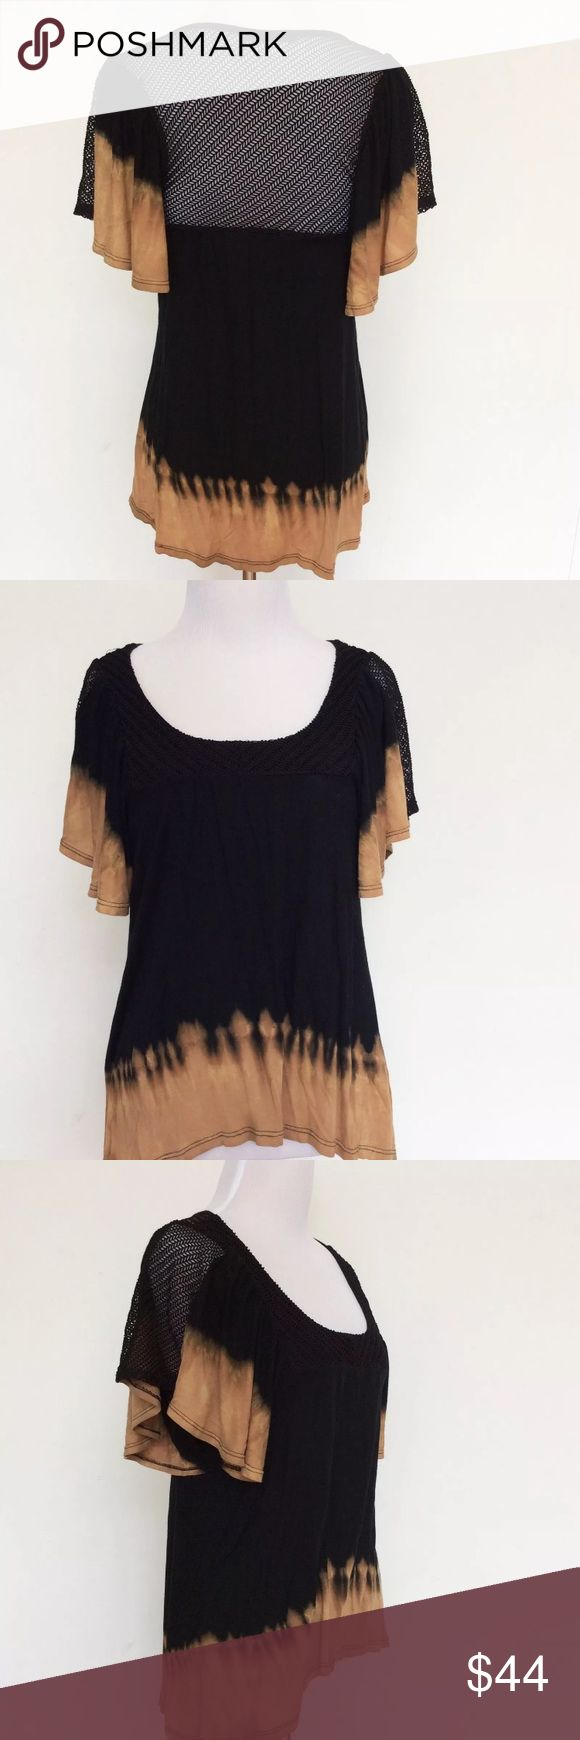 """Black Hearts Brigade Tie Dye Top Brown Shirt XS Black Hearts Brigade Tie Dye Top Brown Shirt Batwing Burning Fishnet Man XSmall  Sooo cute and great for festivals! Black and brown drip tie dye with black fishnet/netty back. Flirty flutter/batwing sleeves! Rare and hard to find!  Excellent Condition. Has a tiny hole in the front bottom.  Size: Extra Small Bust (flat): 16""""-19"""" Length from shoulder: 22.5"""" (front) - 28"""" (back)  97% Nylon. 3% Spandex.  Please check out my Trixy Xchange closet for…"""